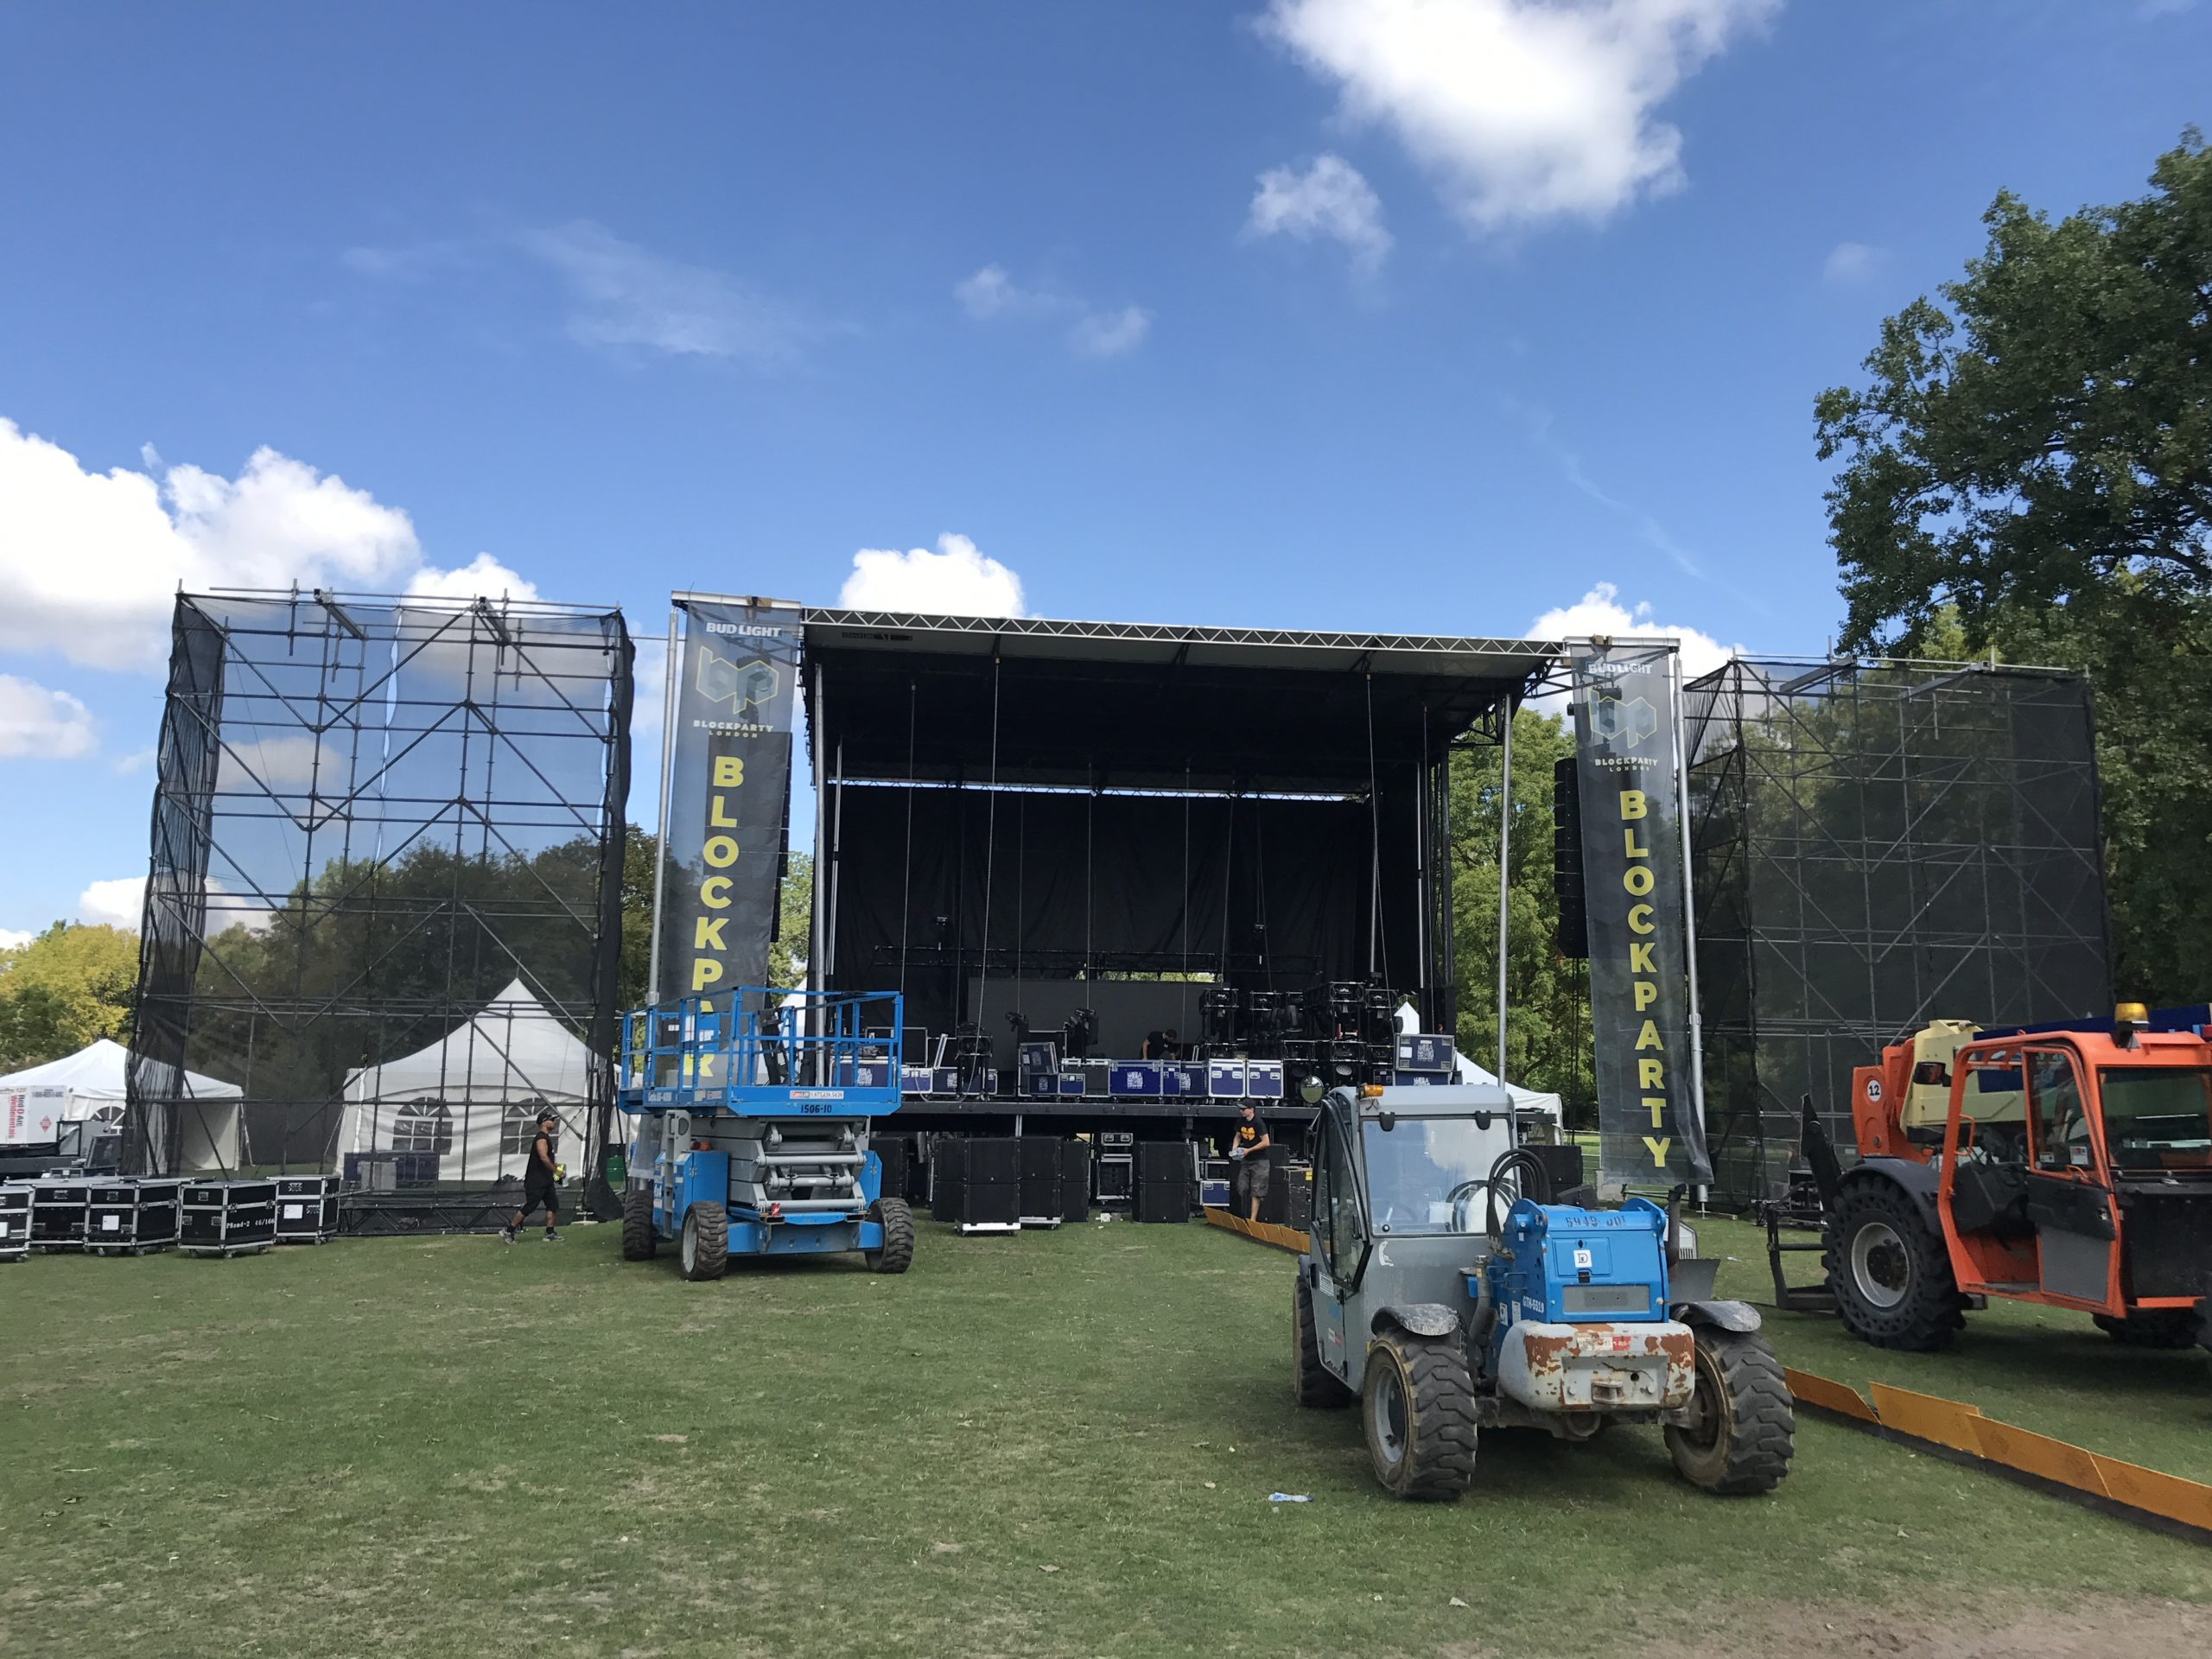 Harris Park prepares for London's biggest EDM Festival